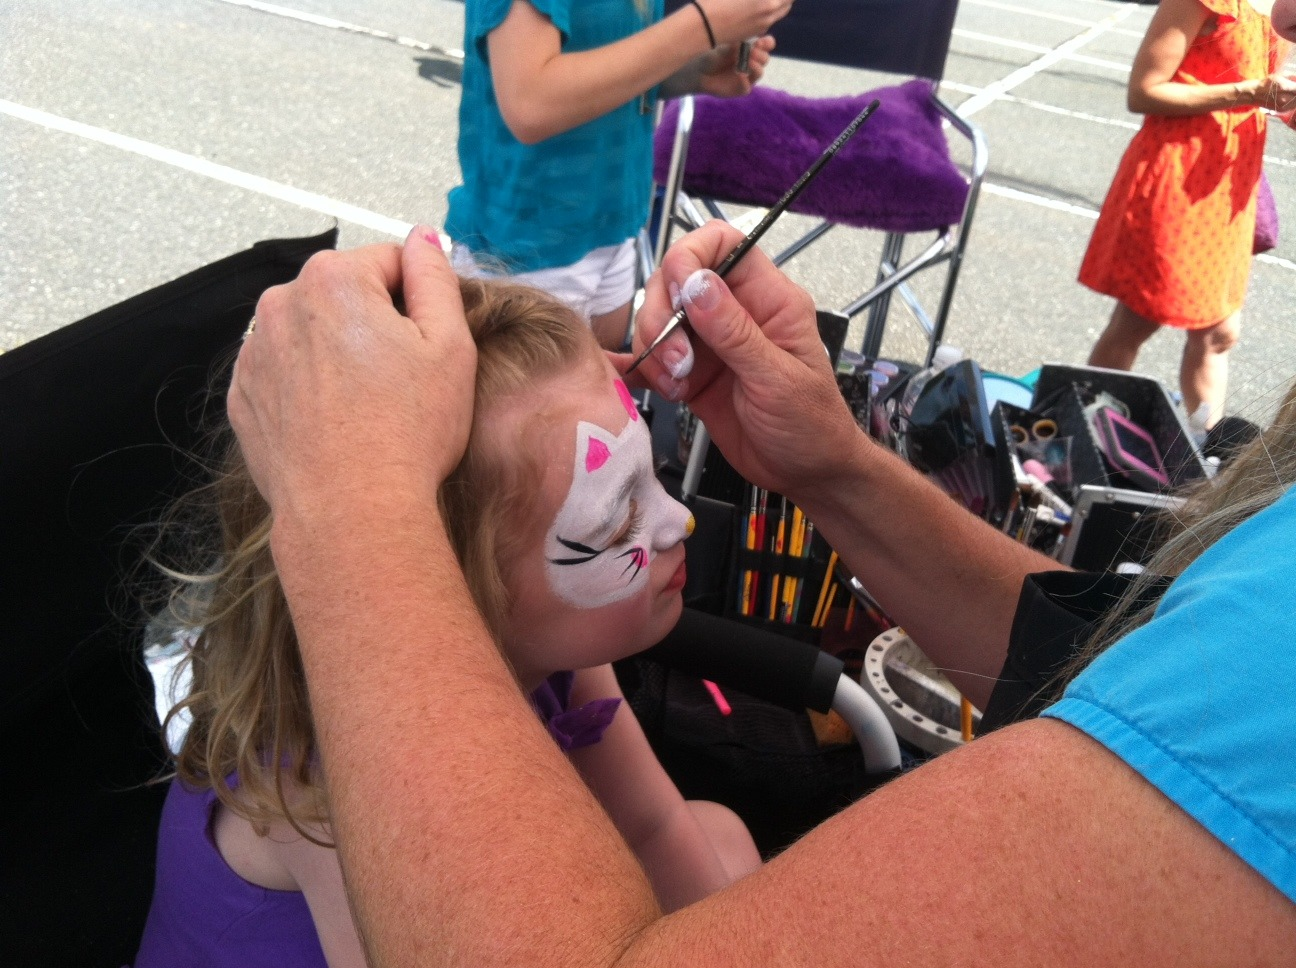 1604c263a757b7f88d3f_Evelyn_Lieberman_gets_face_painted.jpg